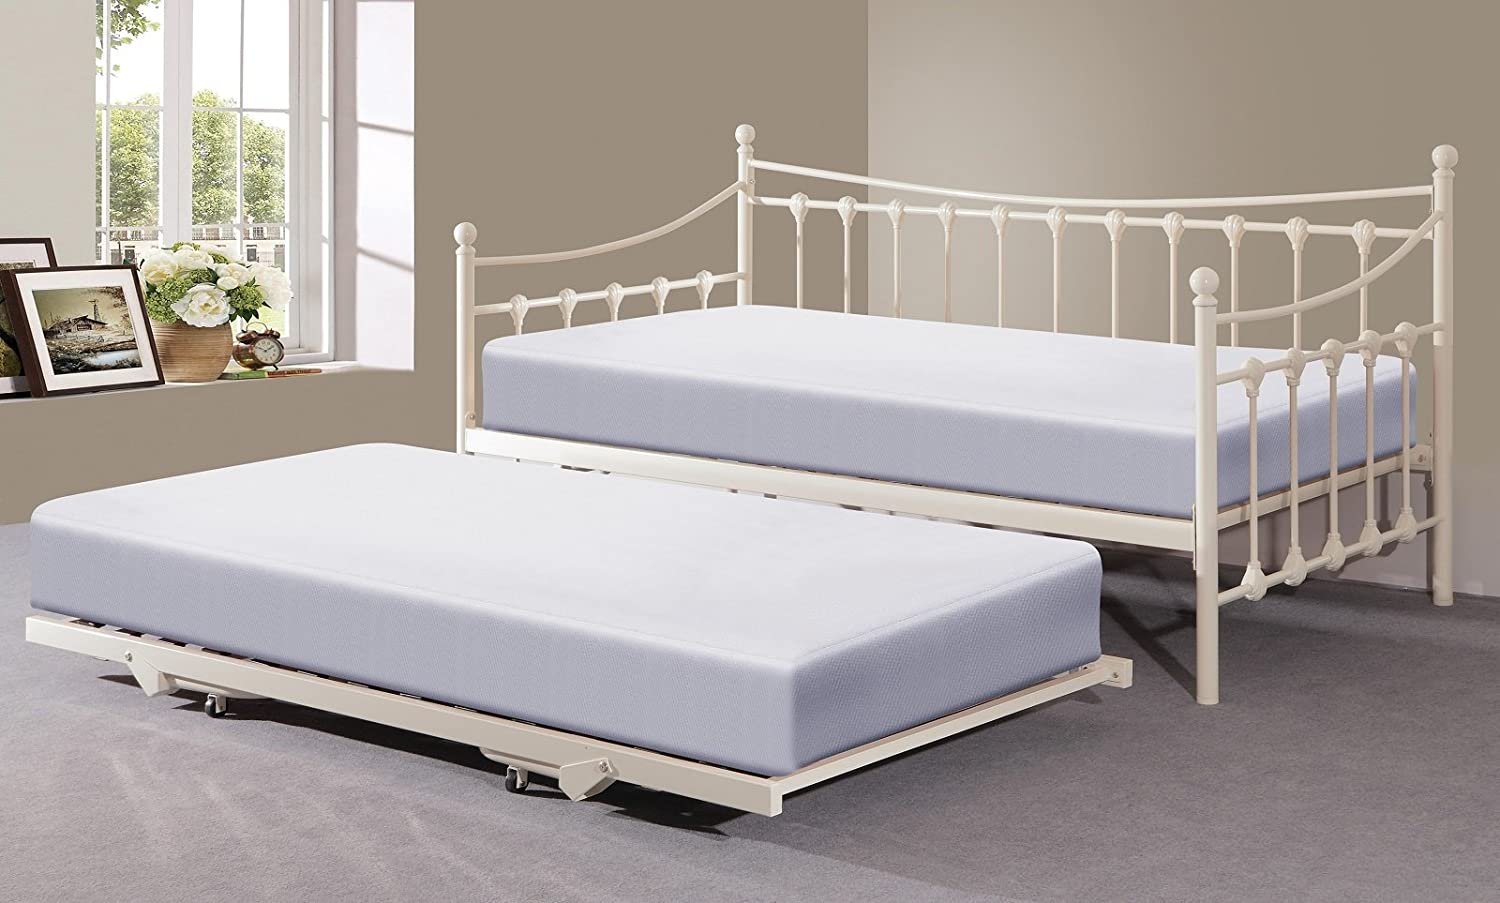 Memphis 3ft Single Day Bed with Trundle - Ivory or Black (Ivory):  Amazon.co.uk: Kitchen & Home